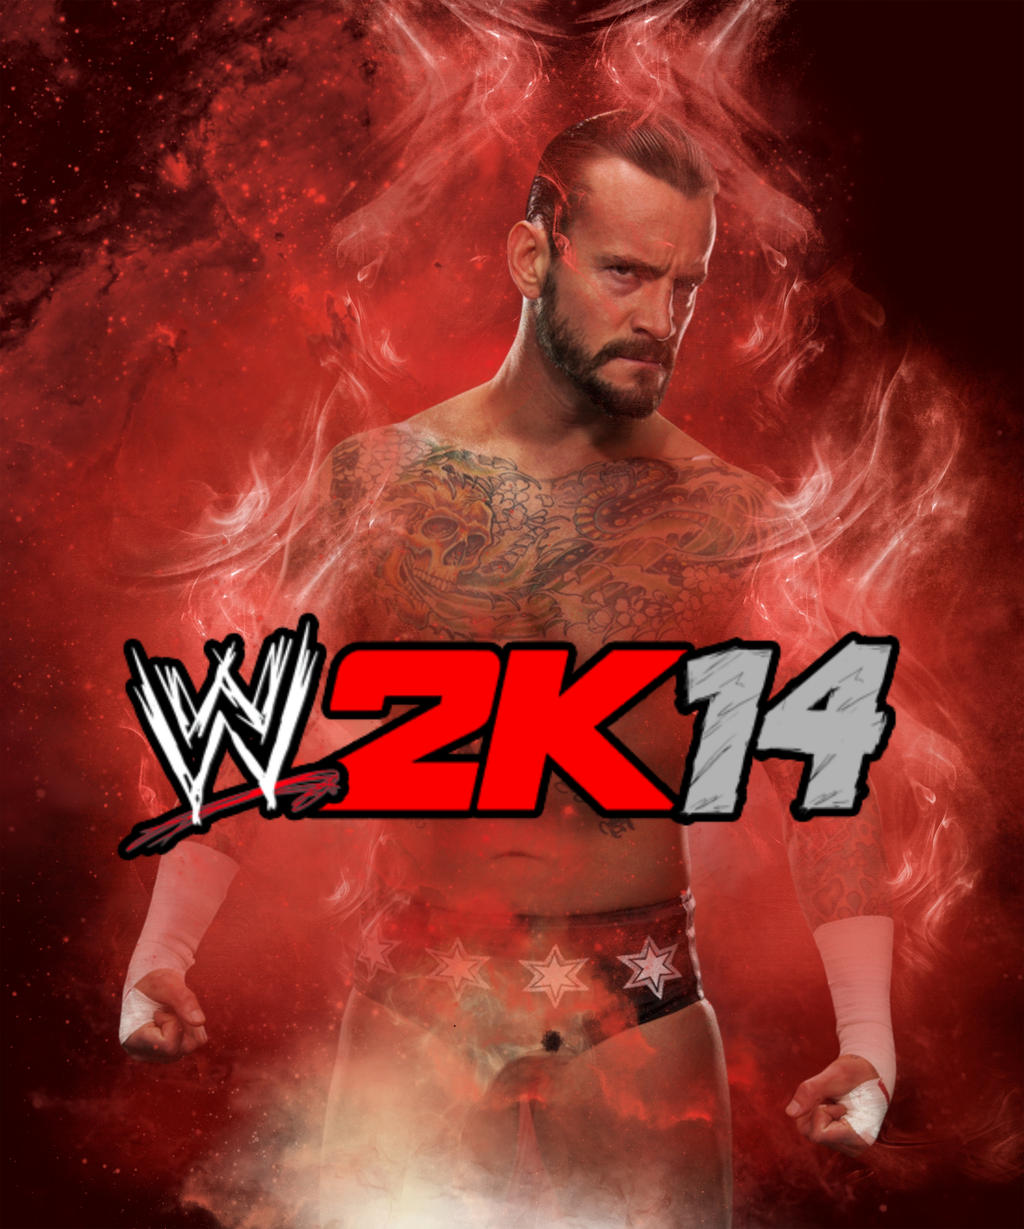 cm punk wwe 2k14 cover #2elitesaiyanwarrior on deviantart